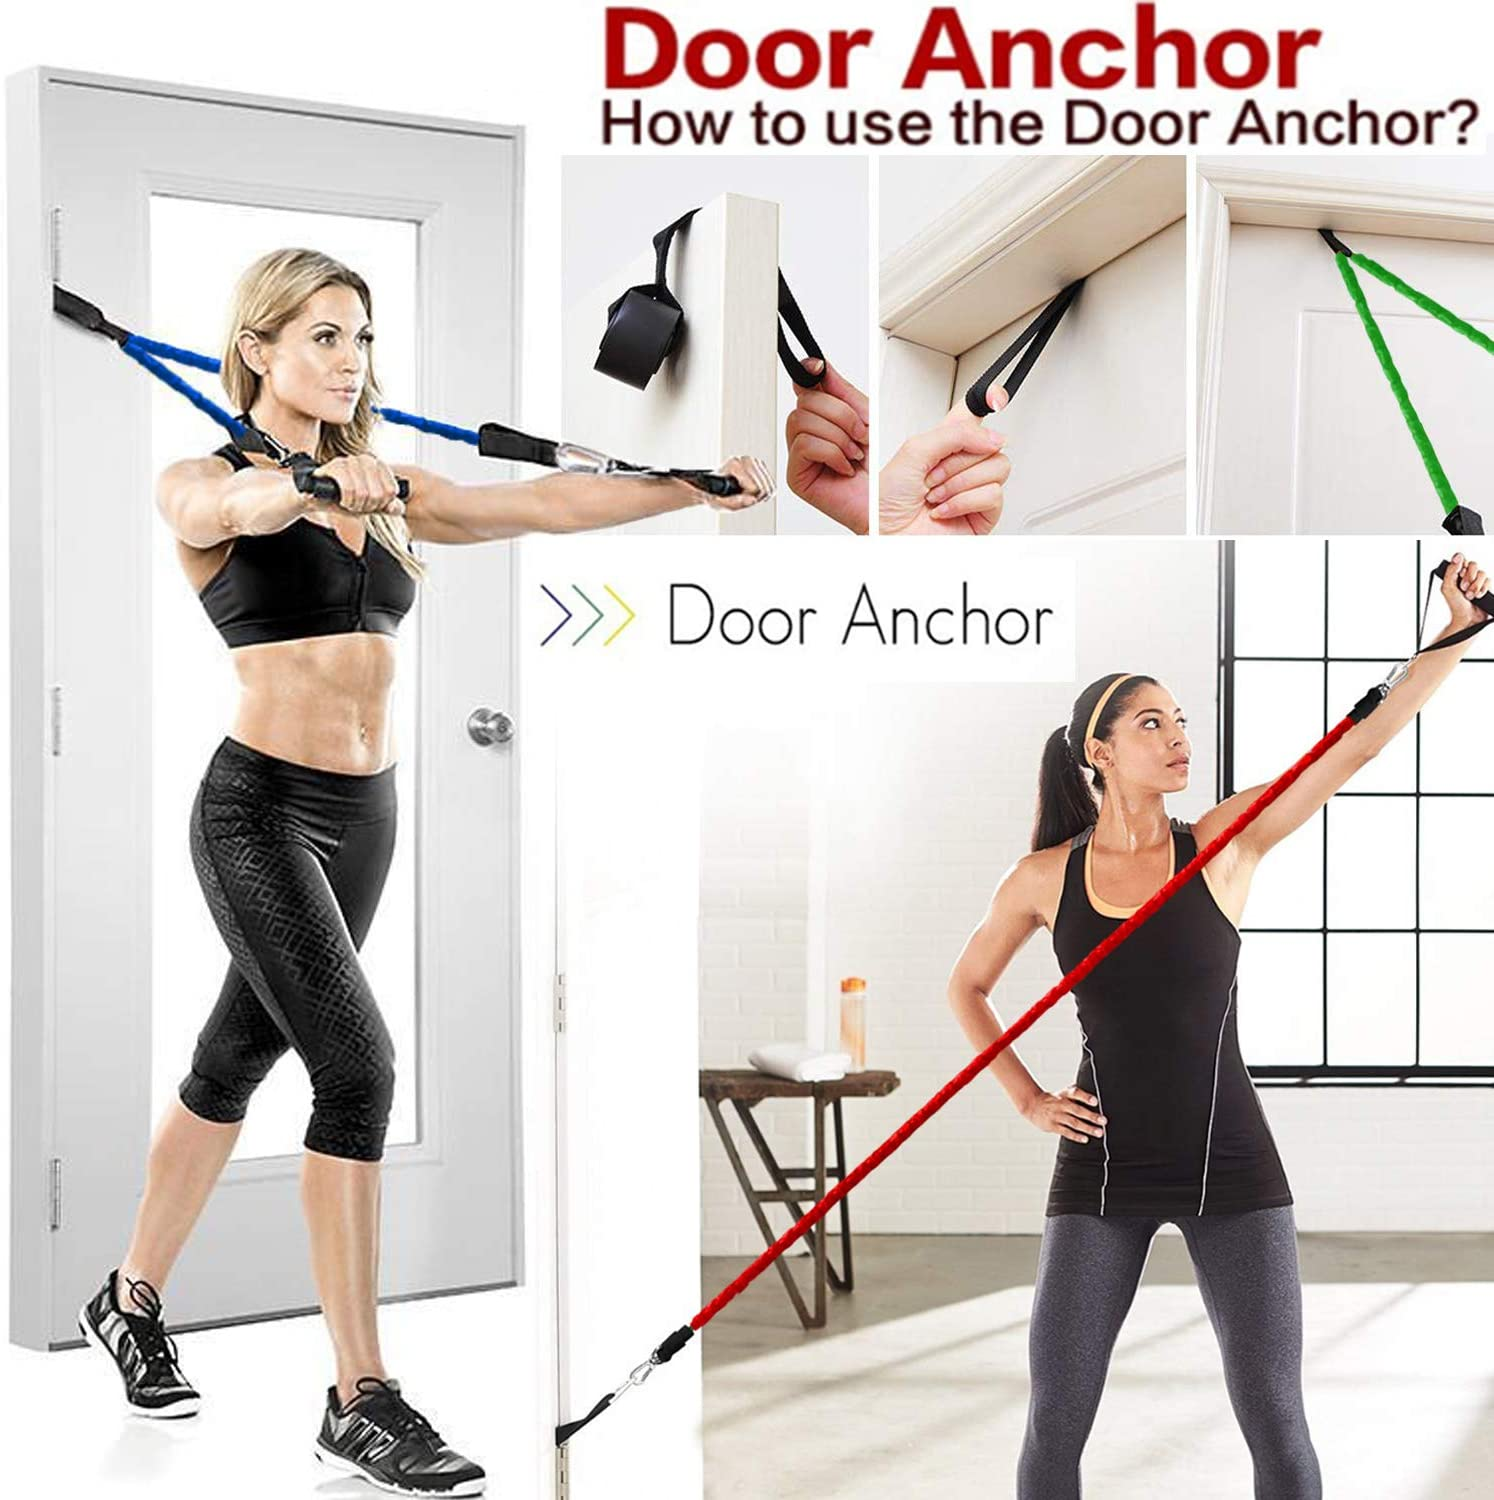 Ktrwer 16 Pcs Resistance Bands Set Workout Exercise Bands with Handles Door Anchor Carry Bag Resistance Loop Bands for Home Fitness Crossfit Stretching Strength Training